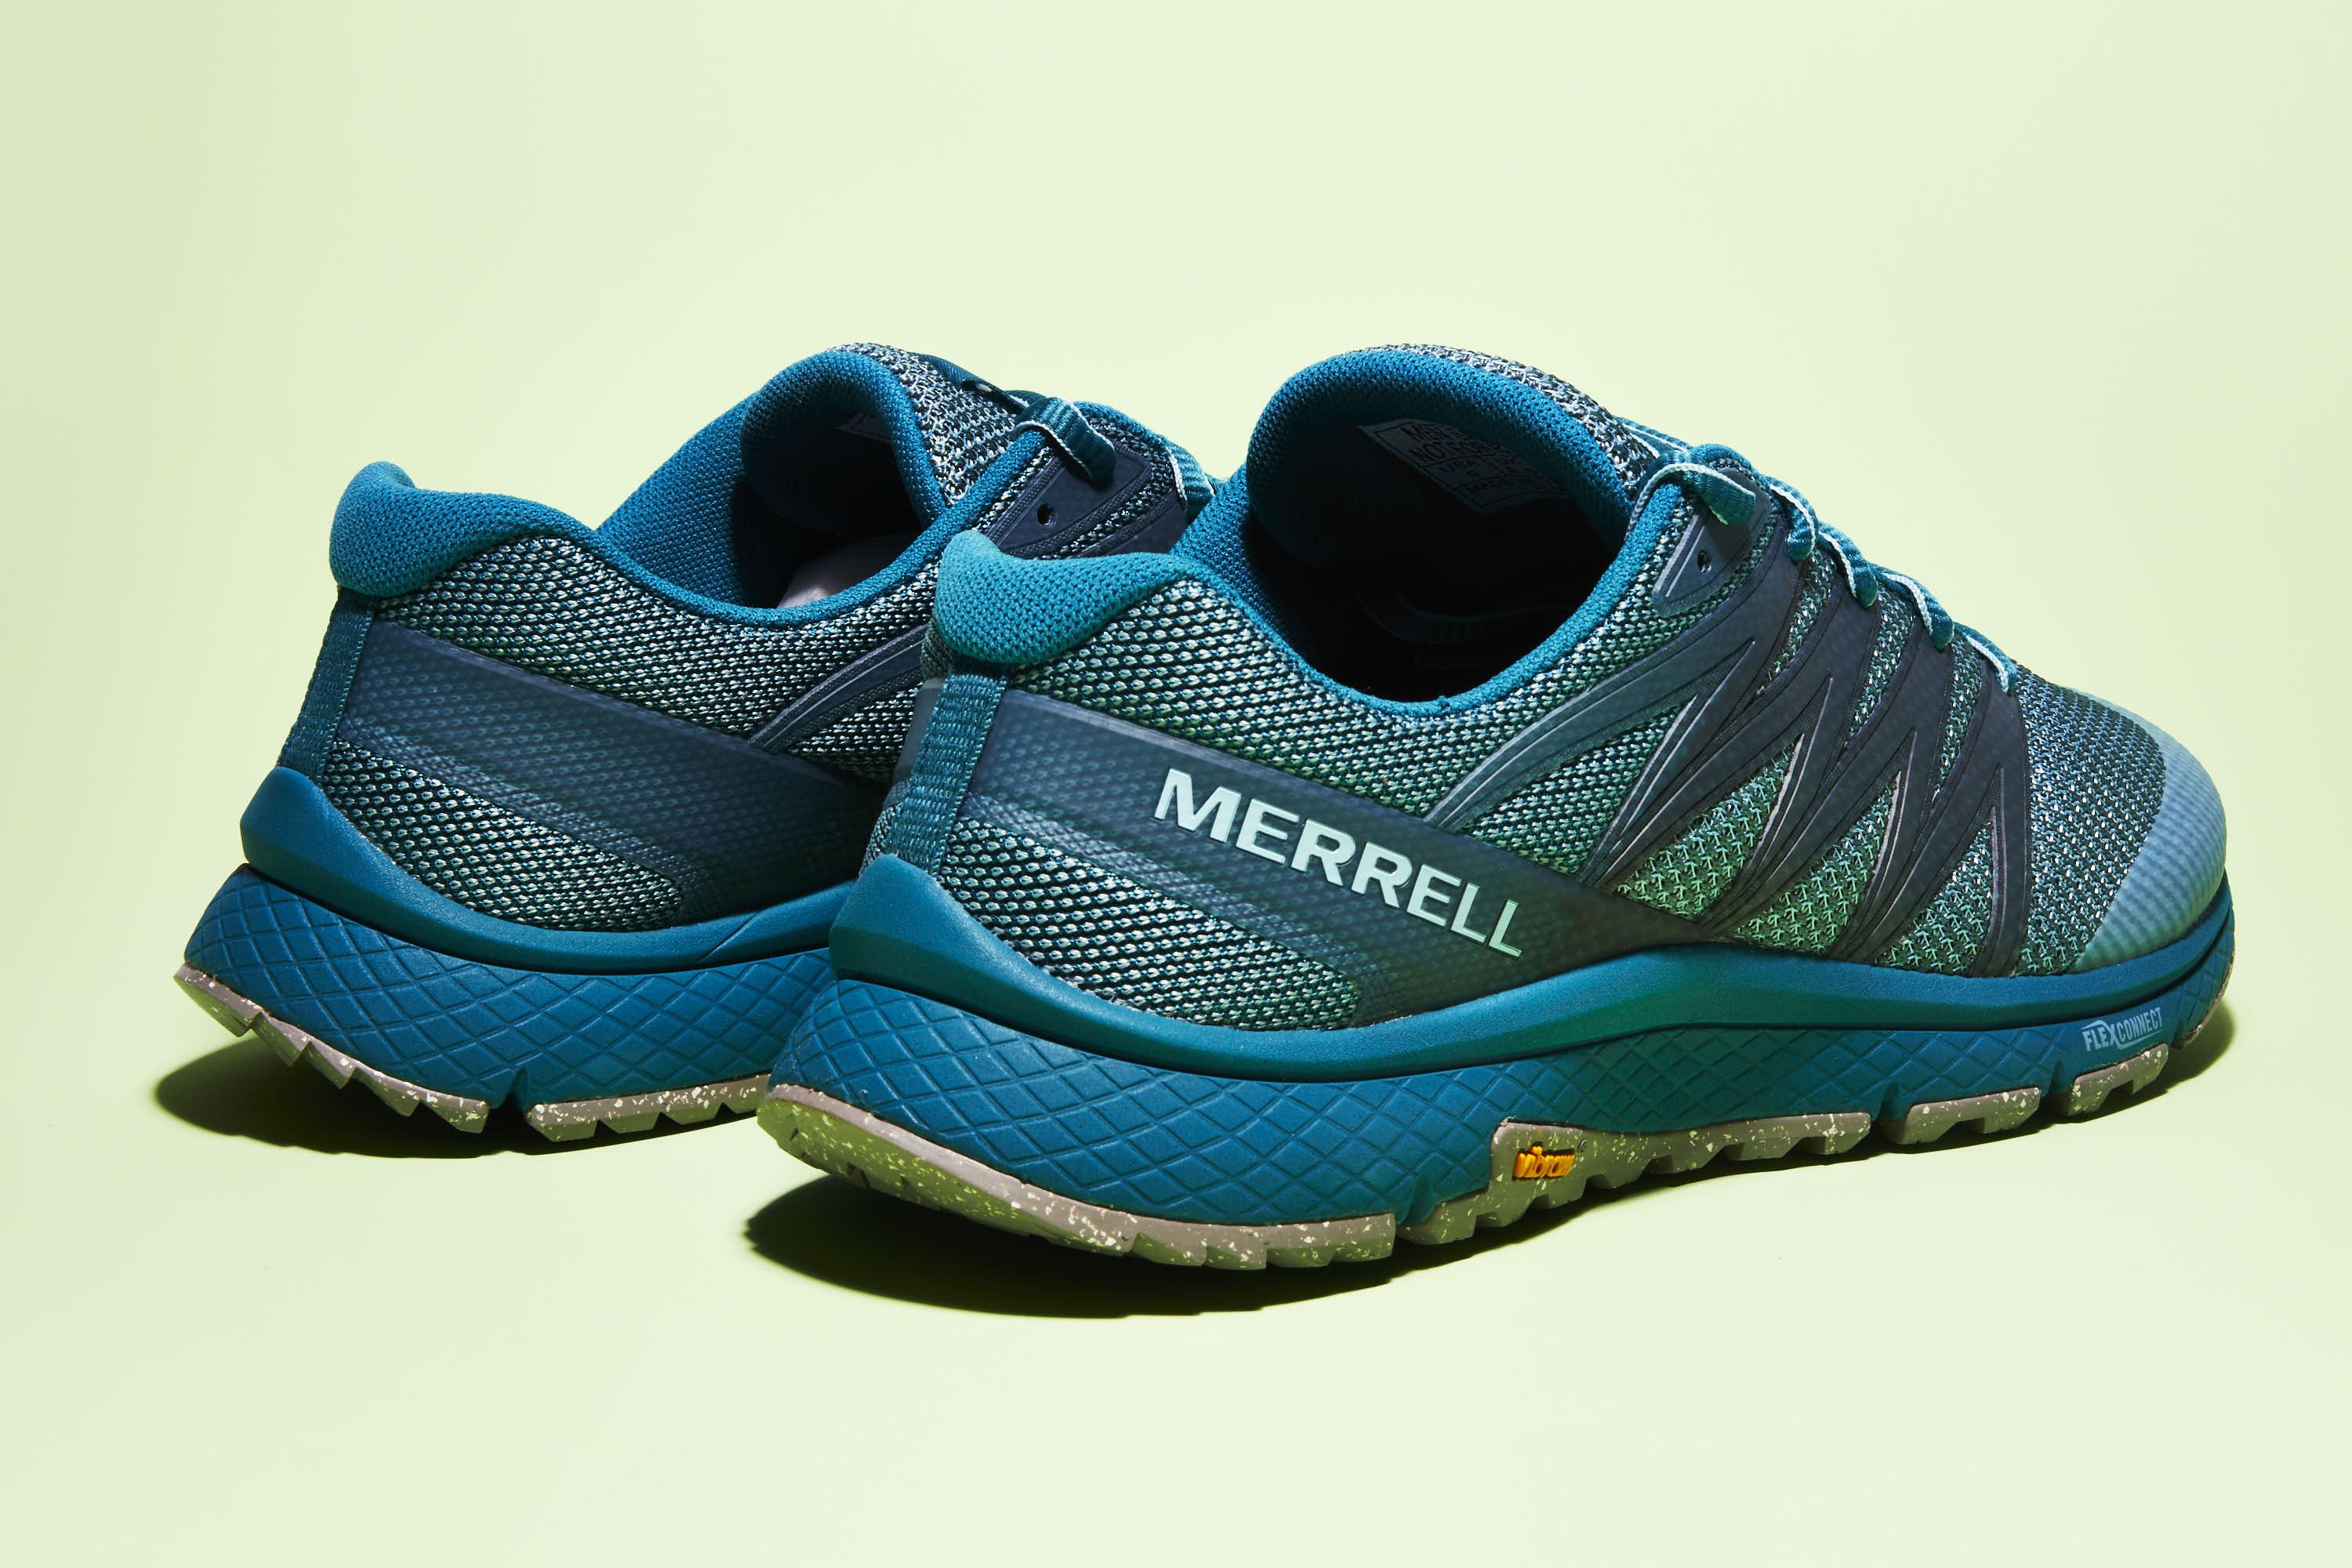 merrell sandals size 12 packet